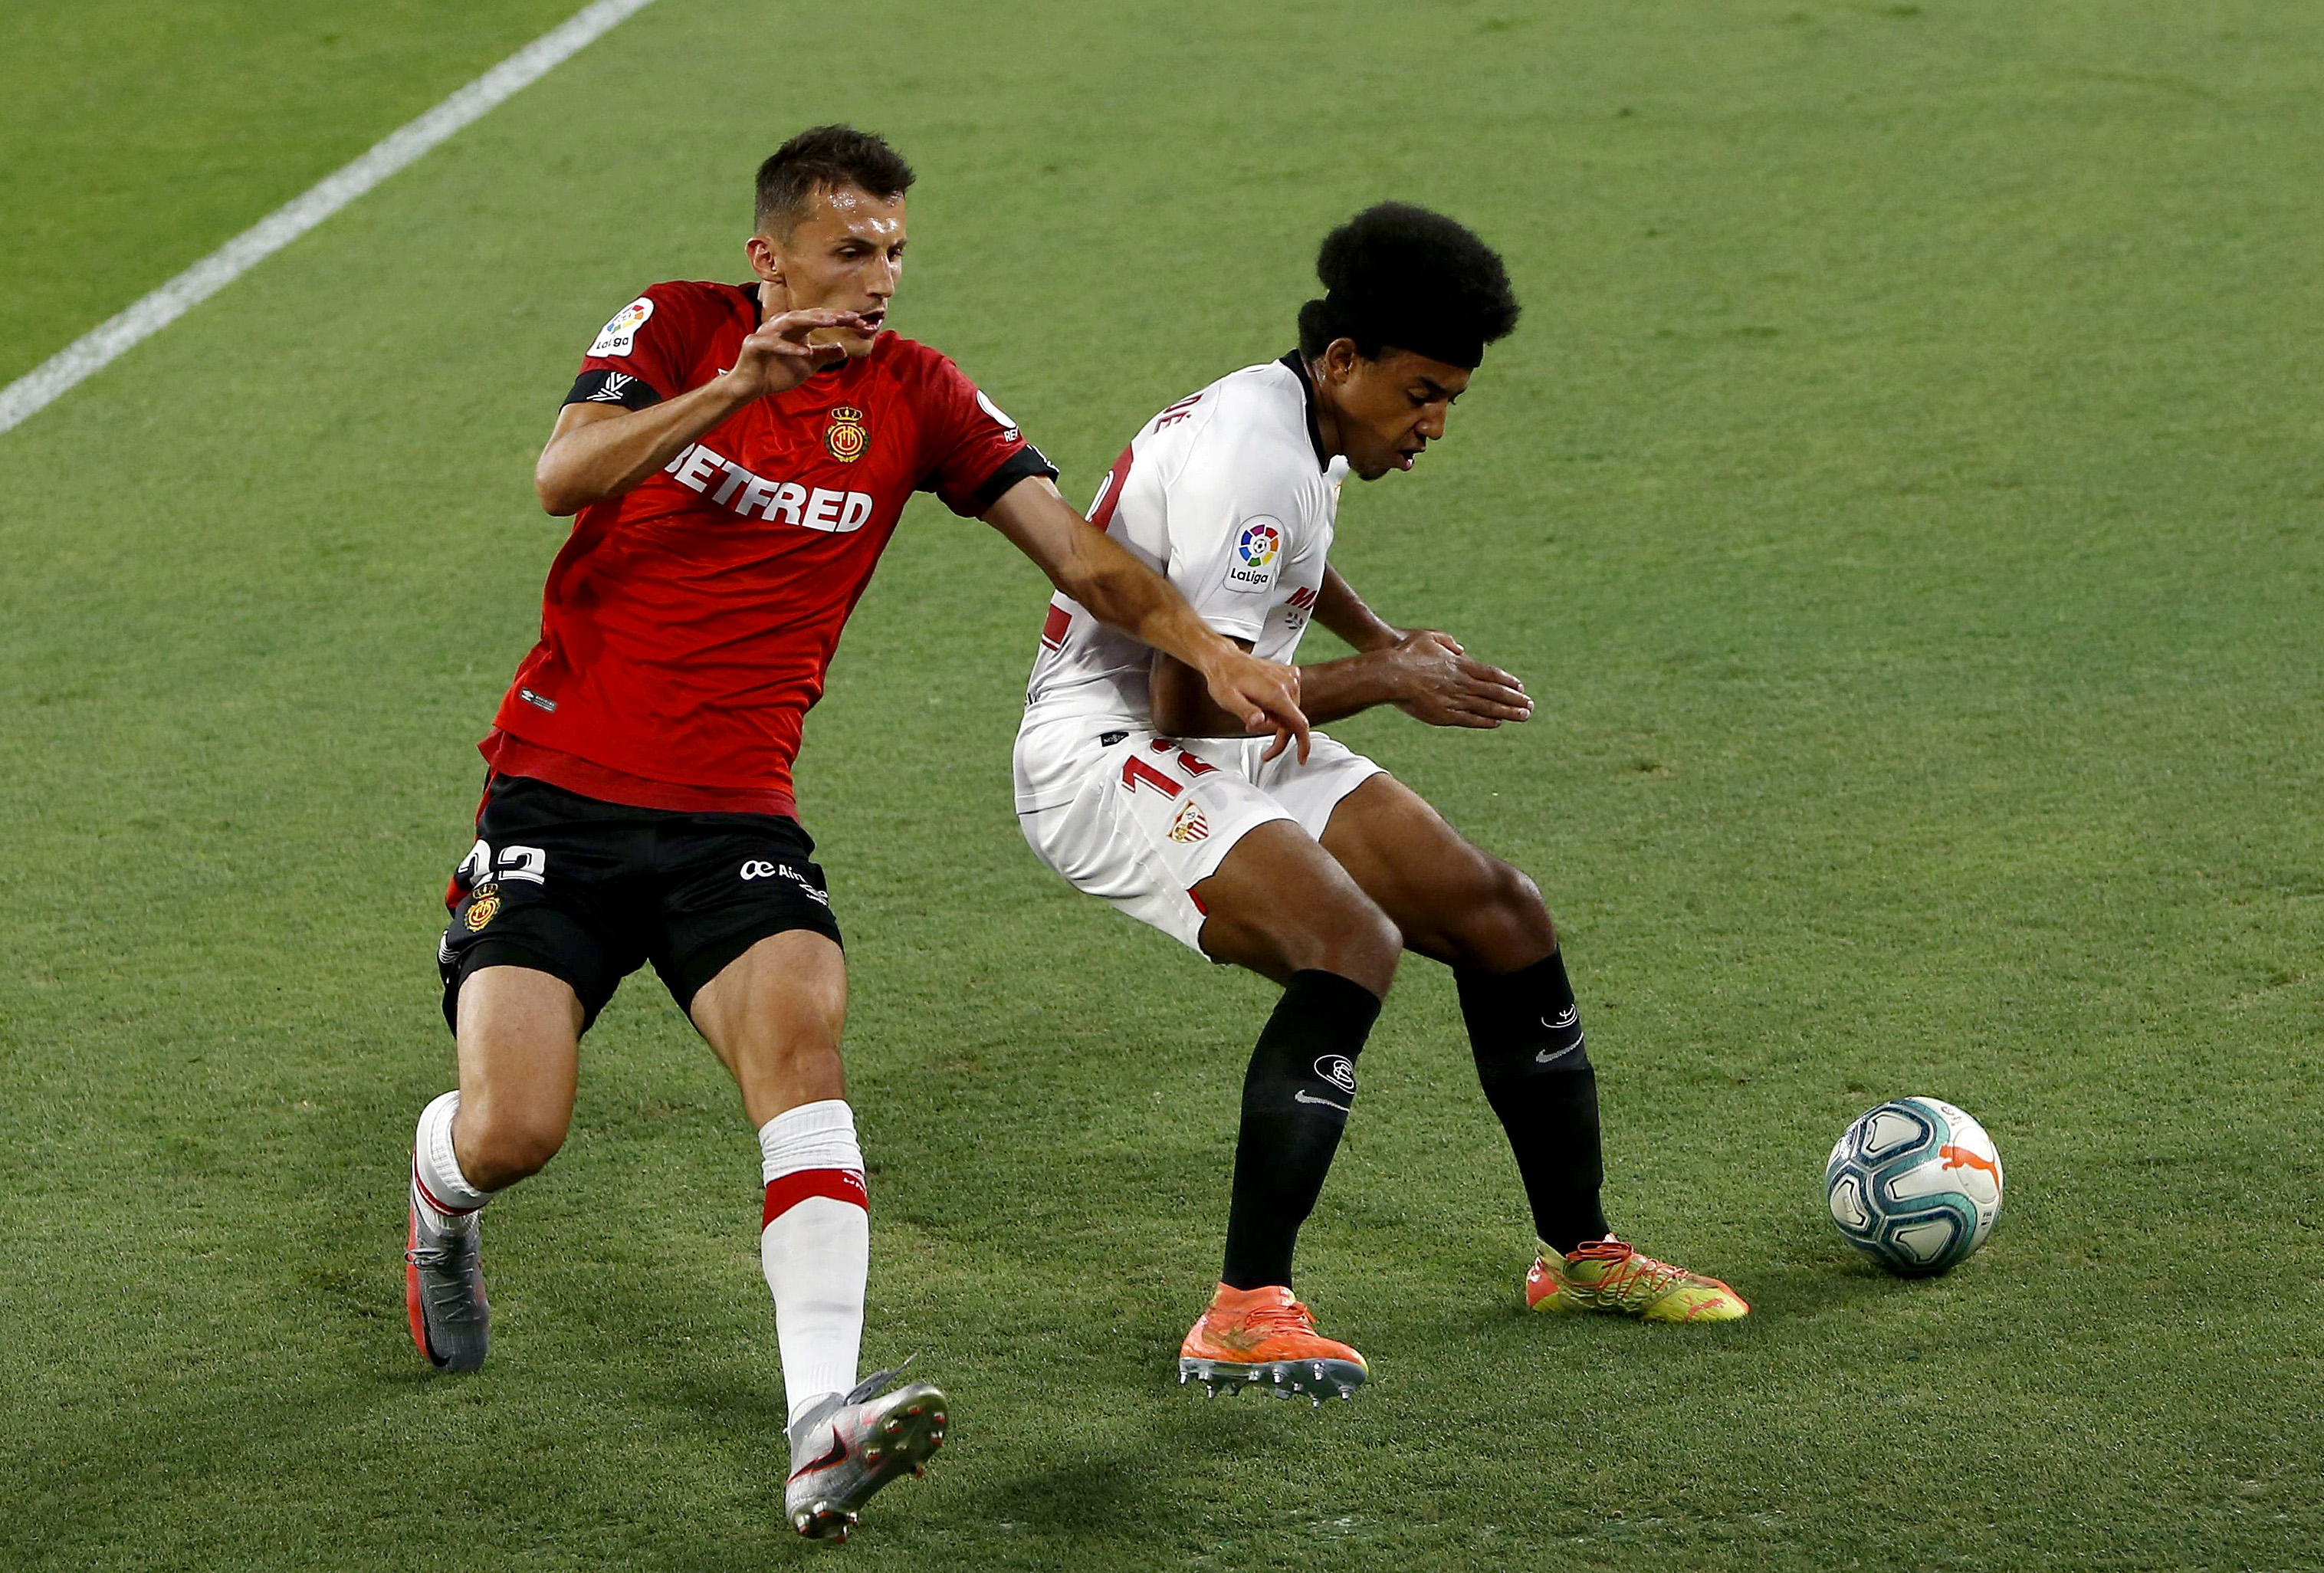 Manchester United identify Jules Kounde as a January target (Kounde is in action in the photo)